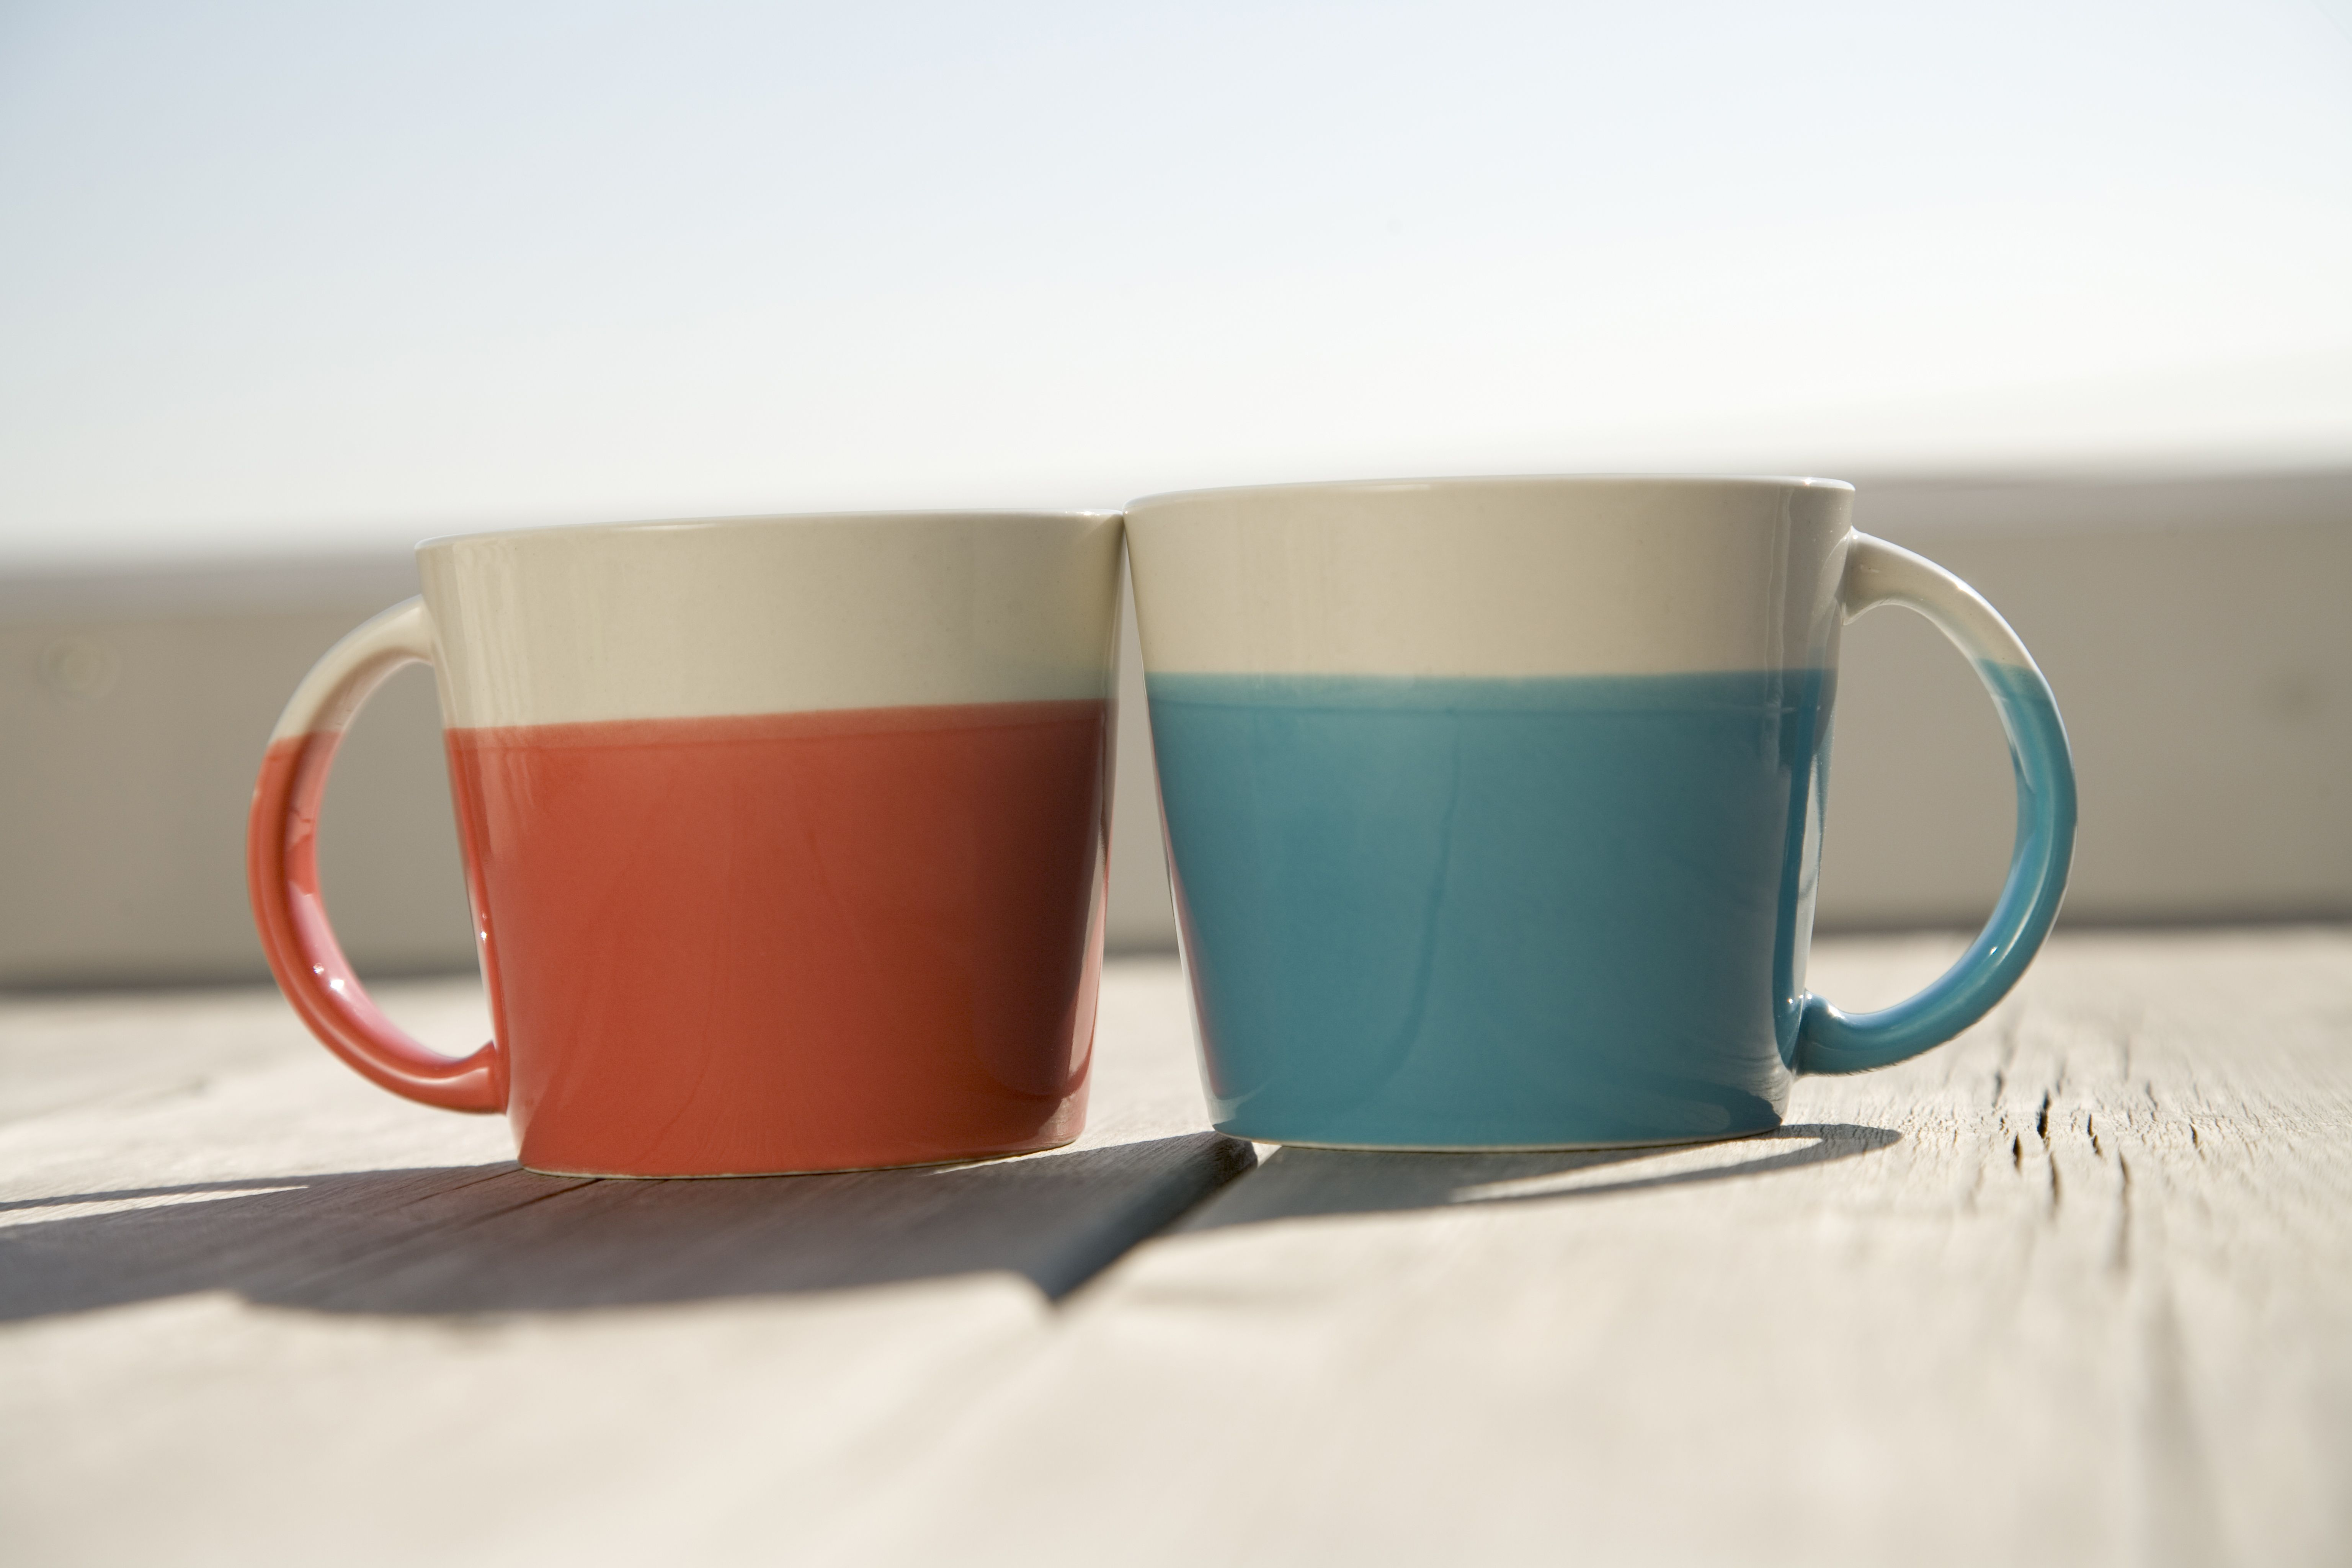 Two coffee cups resting on a table.